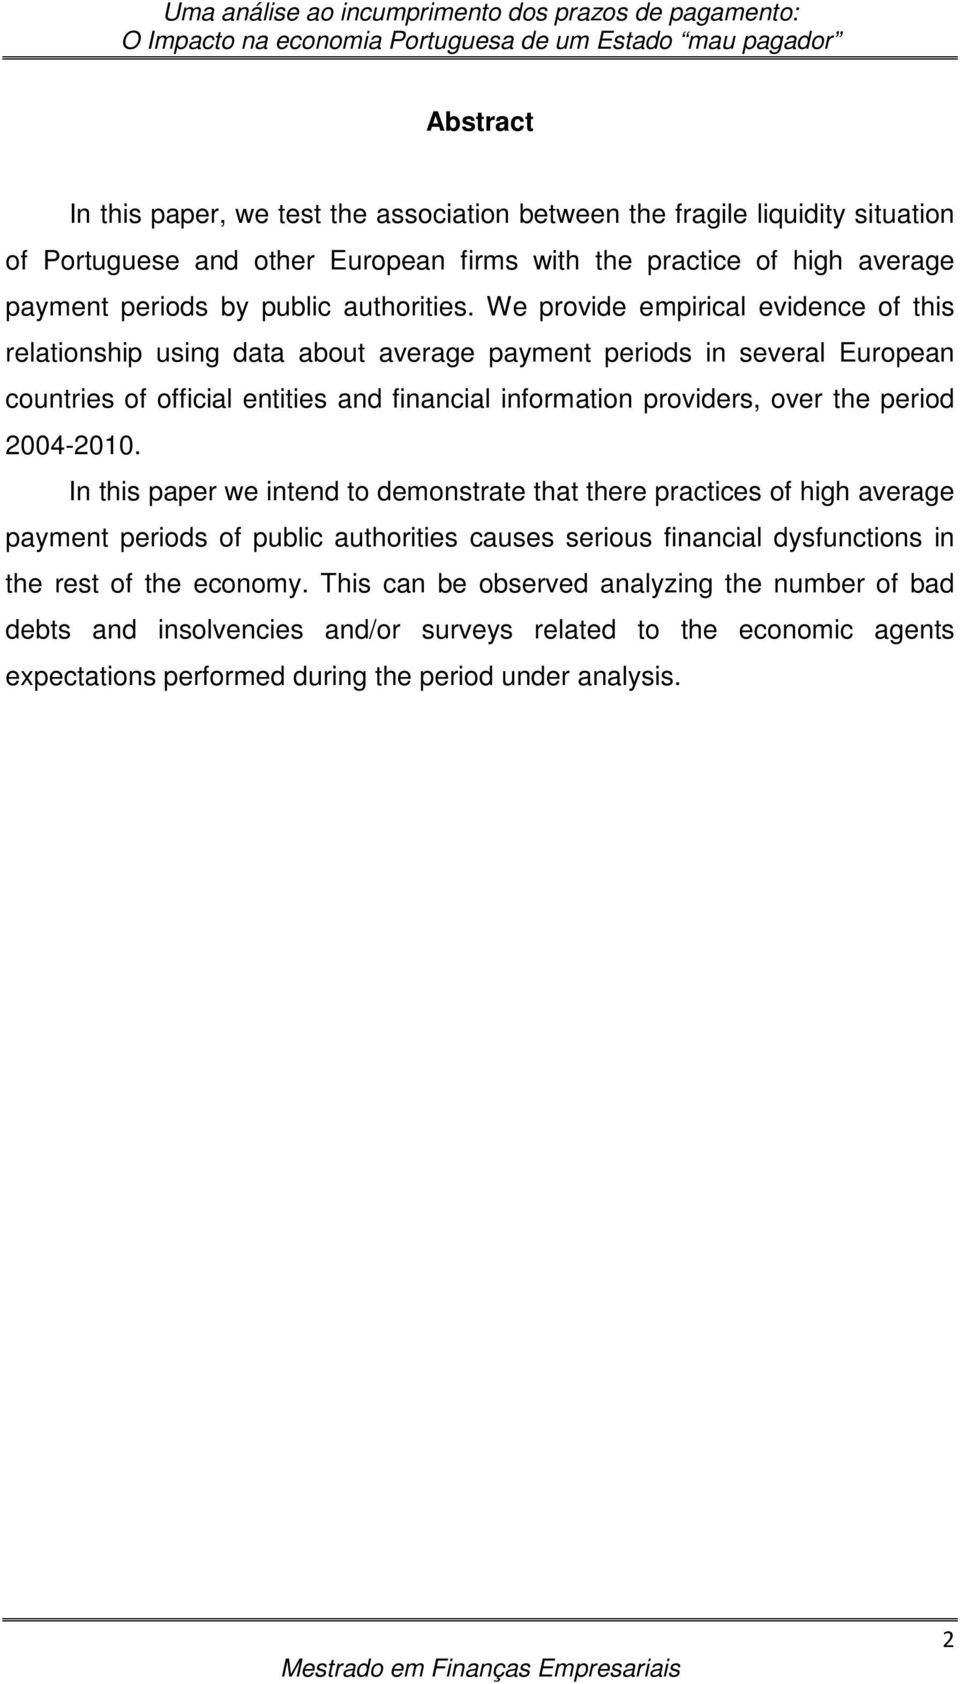 We provide empirical evidence of this relationship using data about average payment periods in several European countries of official entities and financial information providers, over the